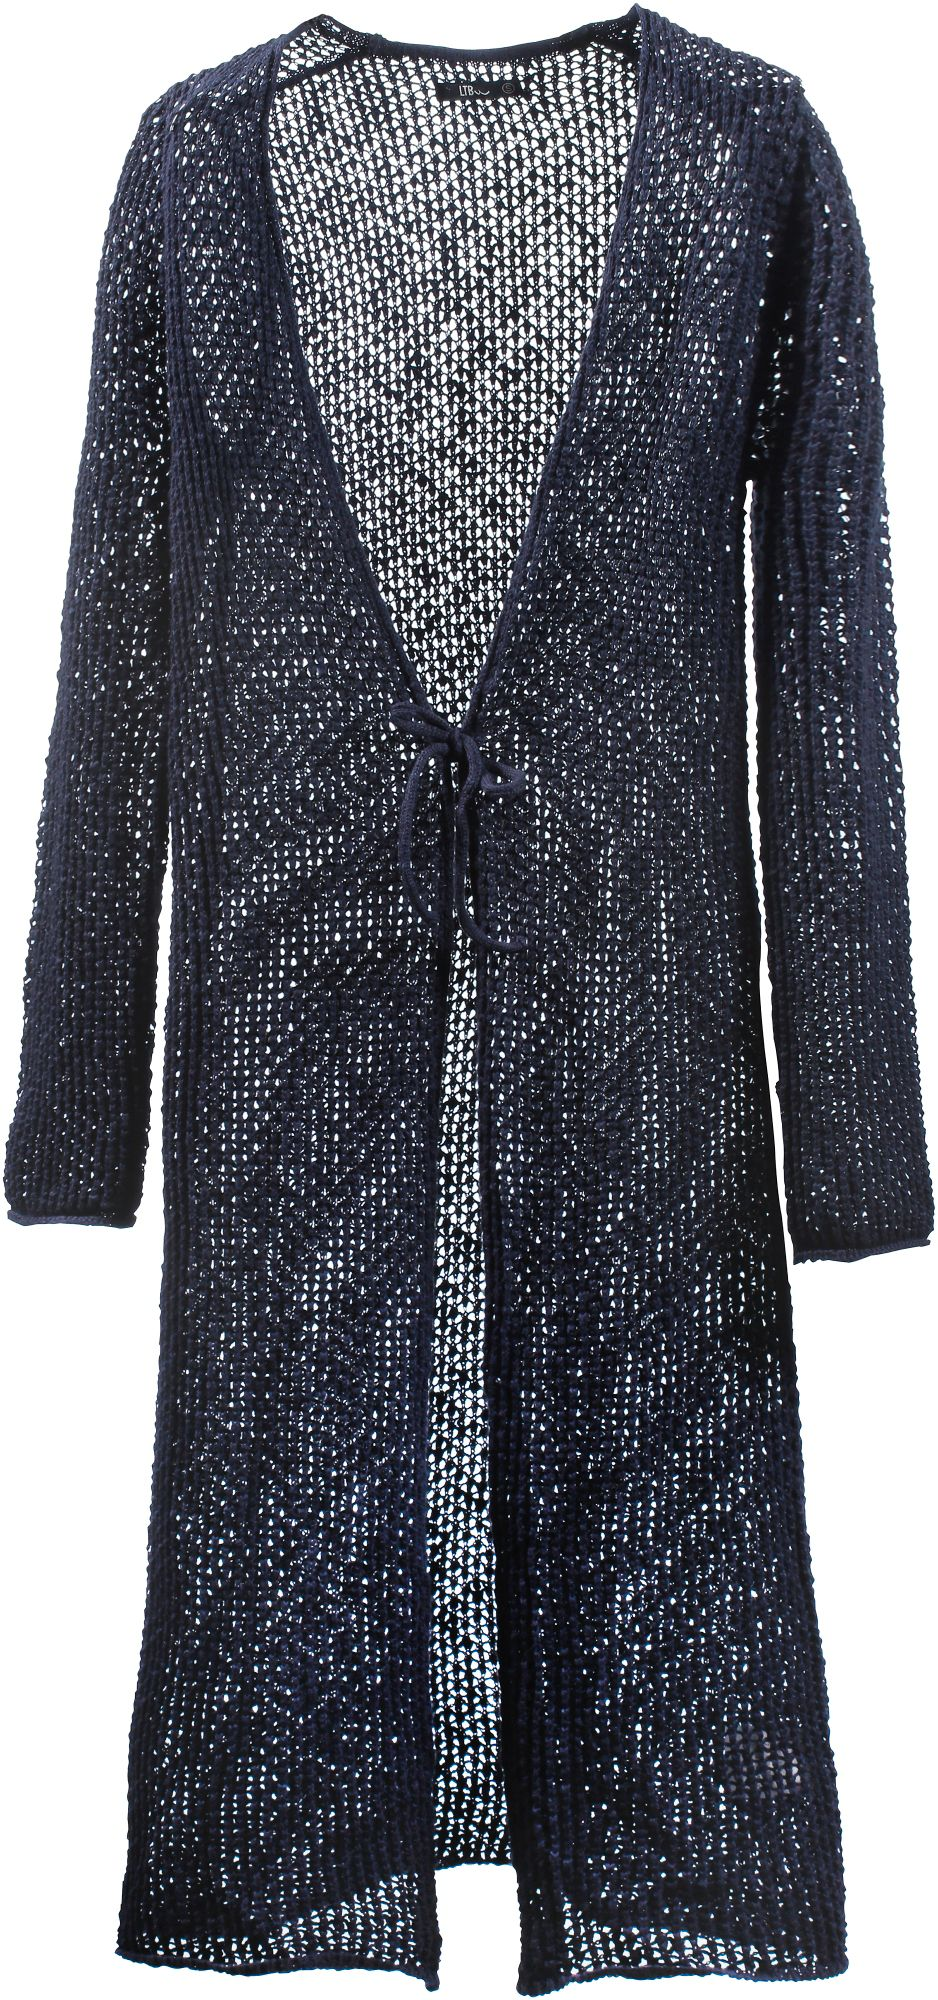 LTB Strickjacke Damen in blau, Größe L